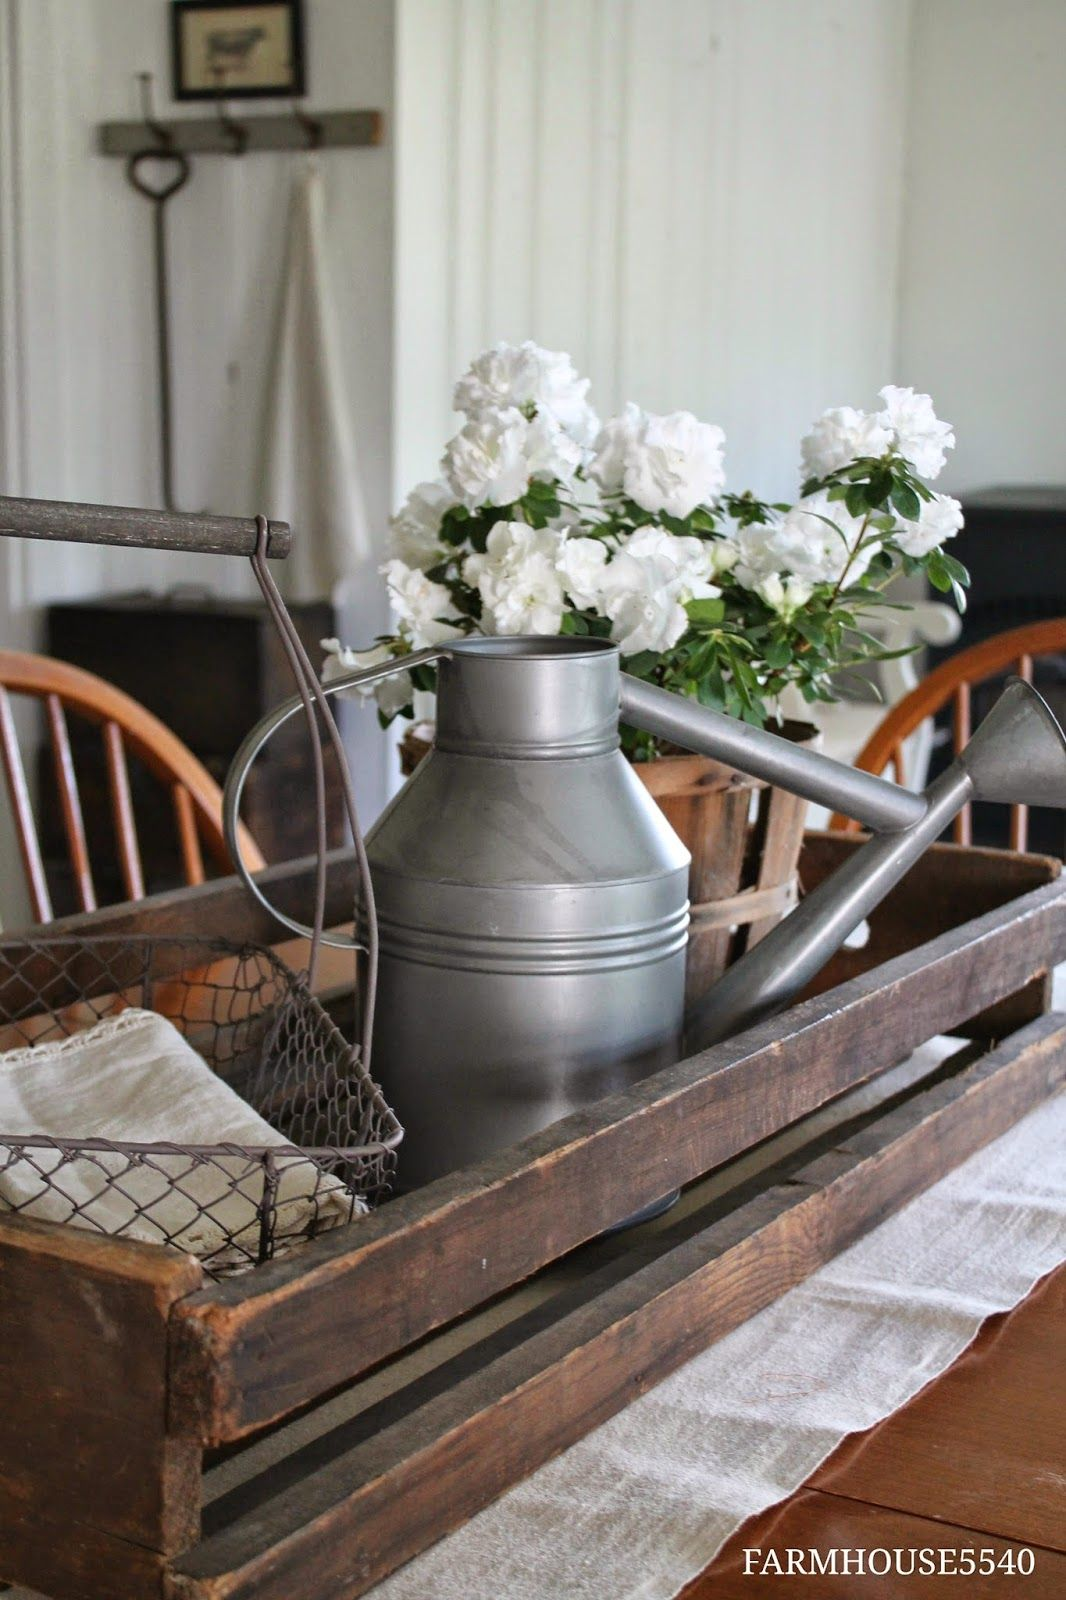 Dining Room Farmhouse5540 Farmhouse Table Centerpieces Dining Table Centerpiece Farmhouse Centerpiece